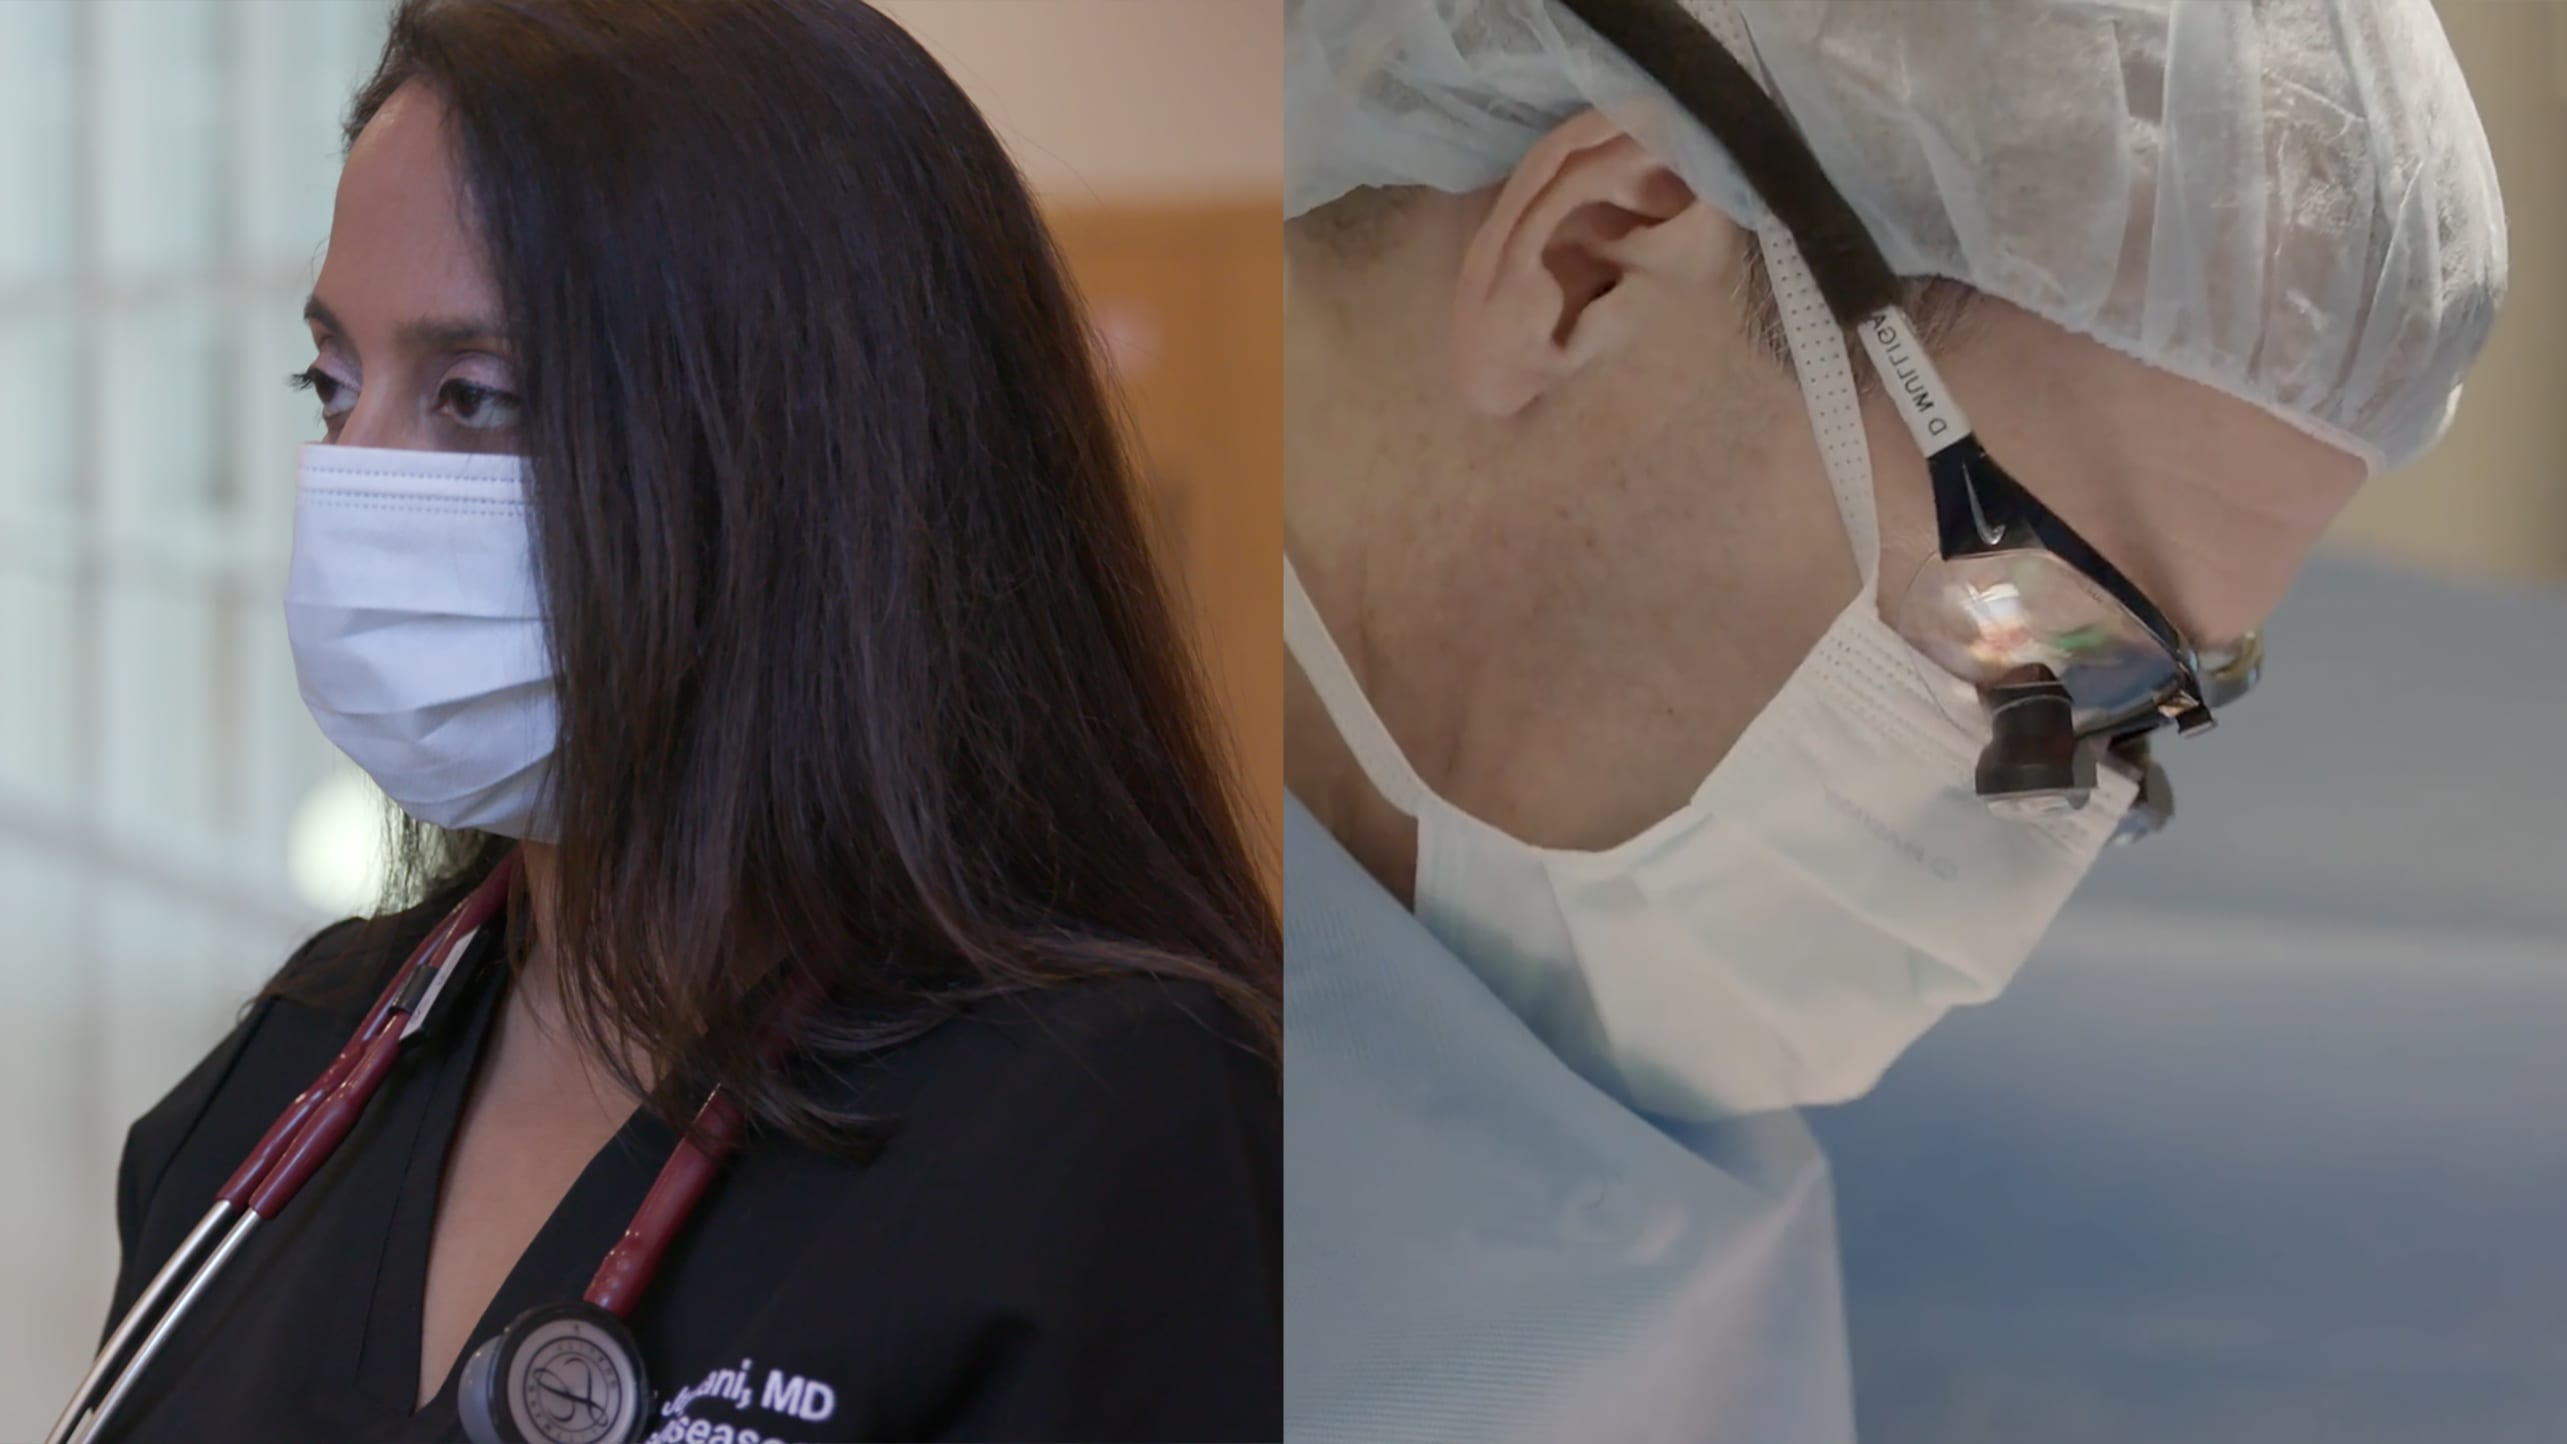 A split screen of a surgeon operating and a doctor speaking to someone with a mask on.